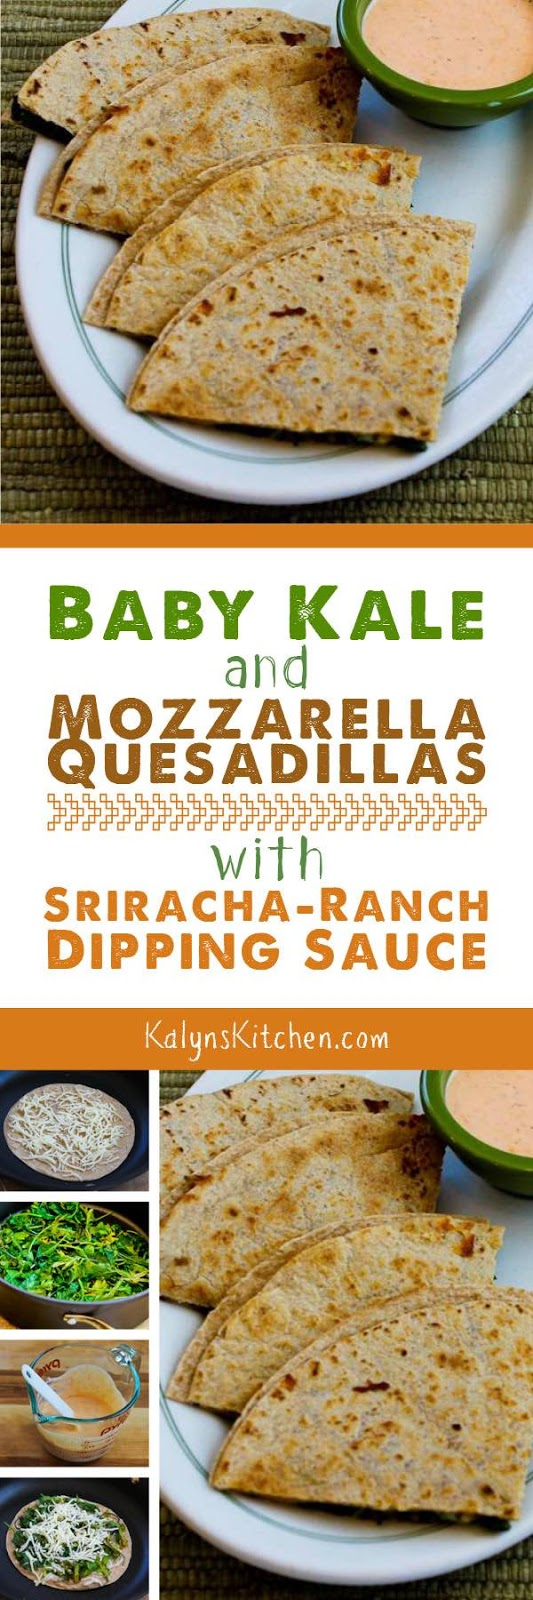 Baby Kale And Mozzarella Quesadillas With Sriracha-Ranch ...